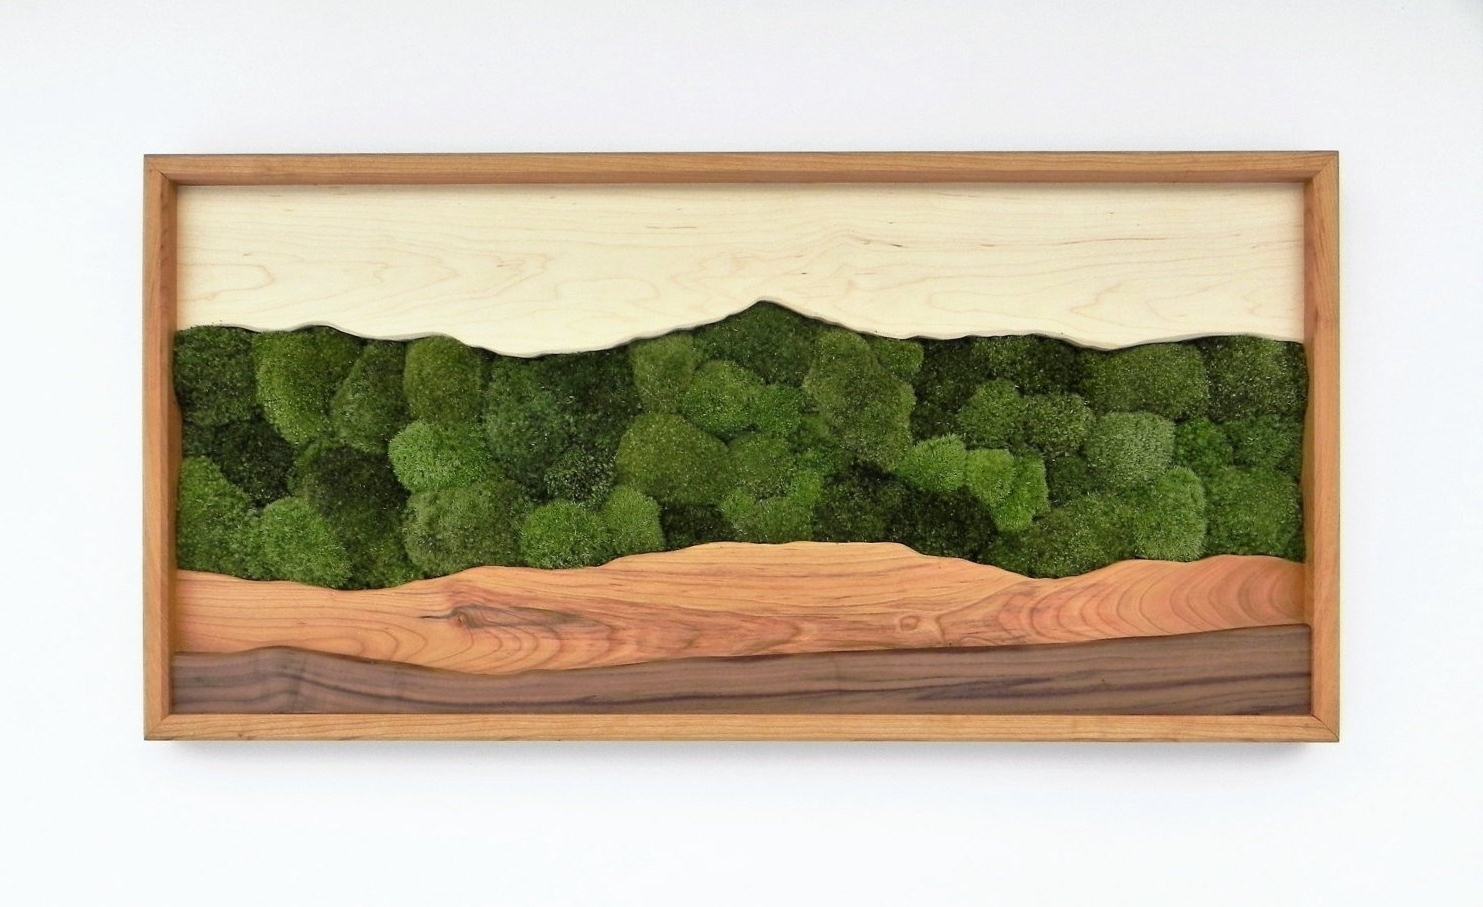 Newest Green Wall Art With Green Mountain Moss Wall Art /sugar Maple, Cherry, Walnut, Preserved (View 7 of 20)